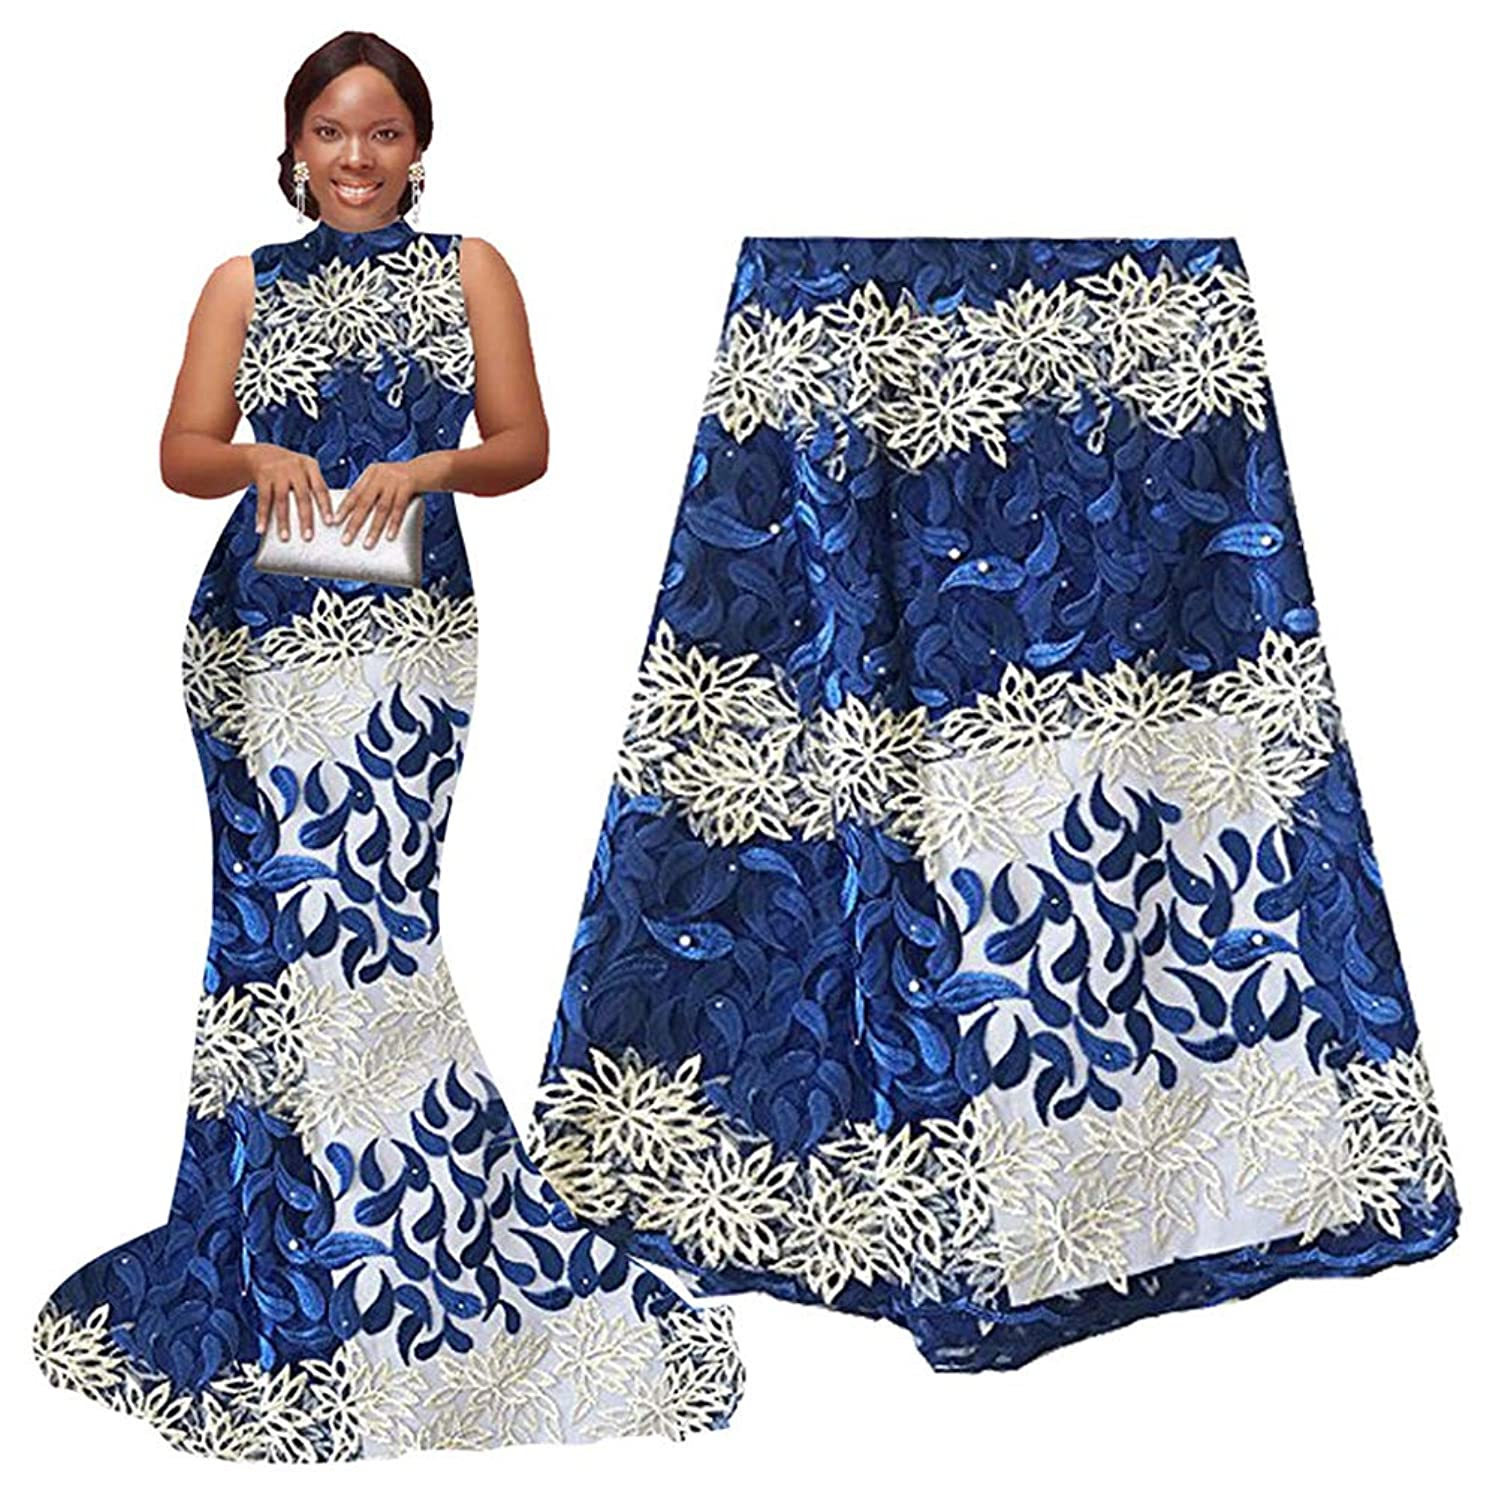 pqdaysun African Lace Fabric 5 Yards 2019 Nigerian Wedding Lace Wax Fabric Rhinestones Beading French Lace F50624 (Royal Blue)